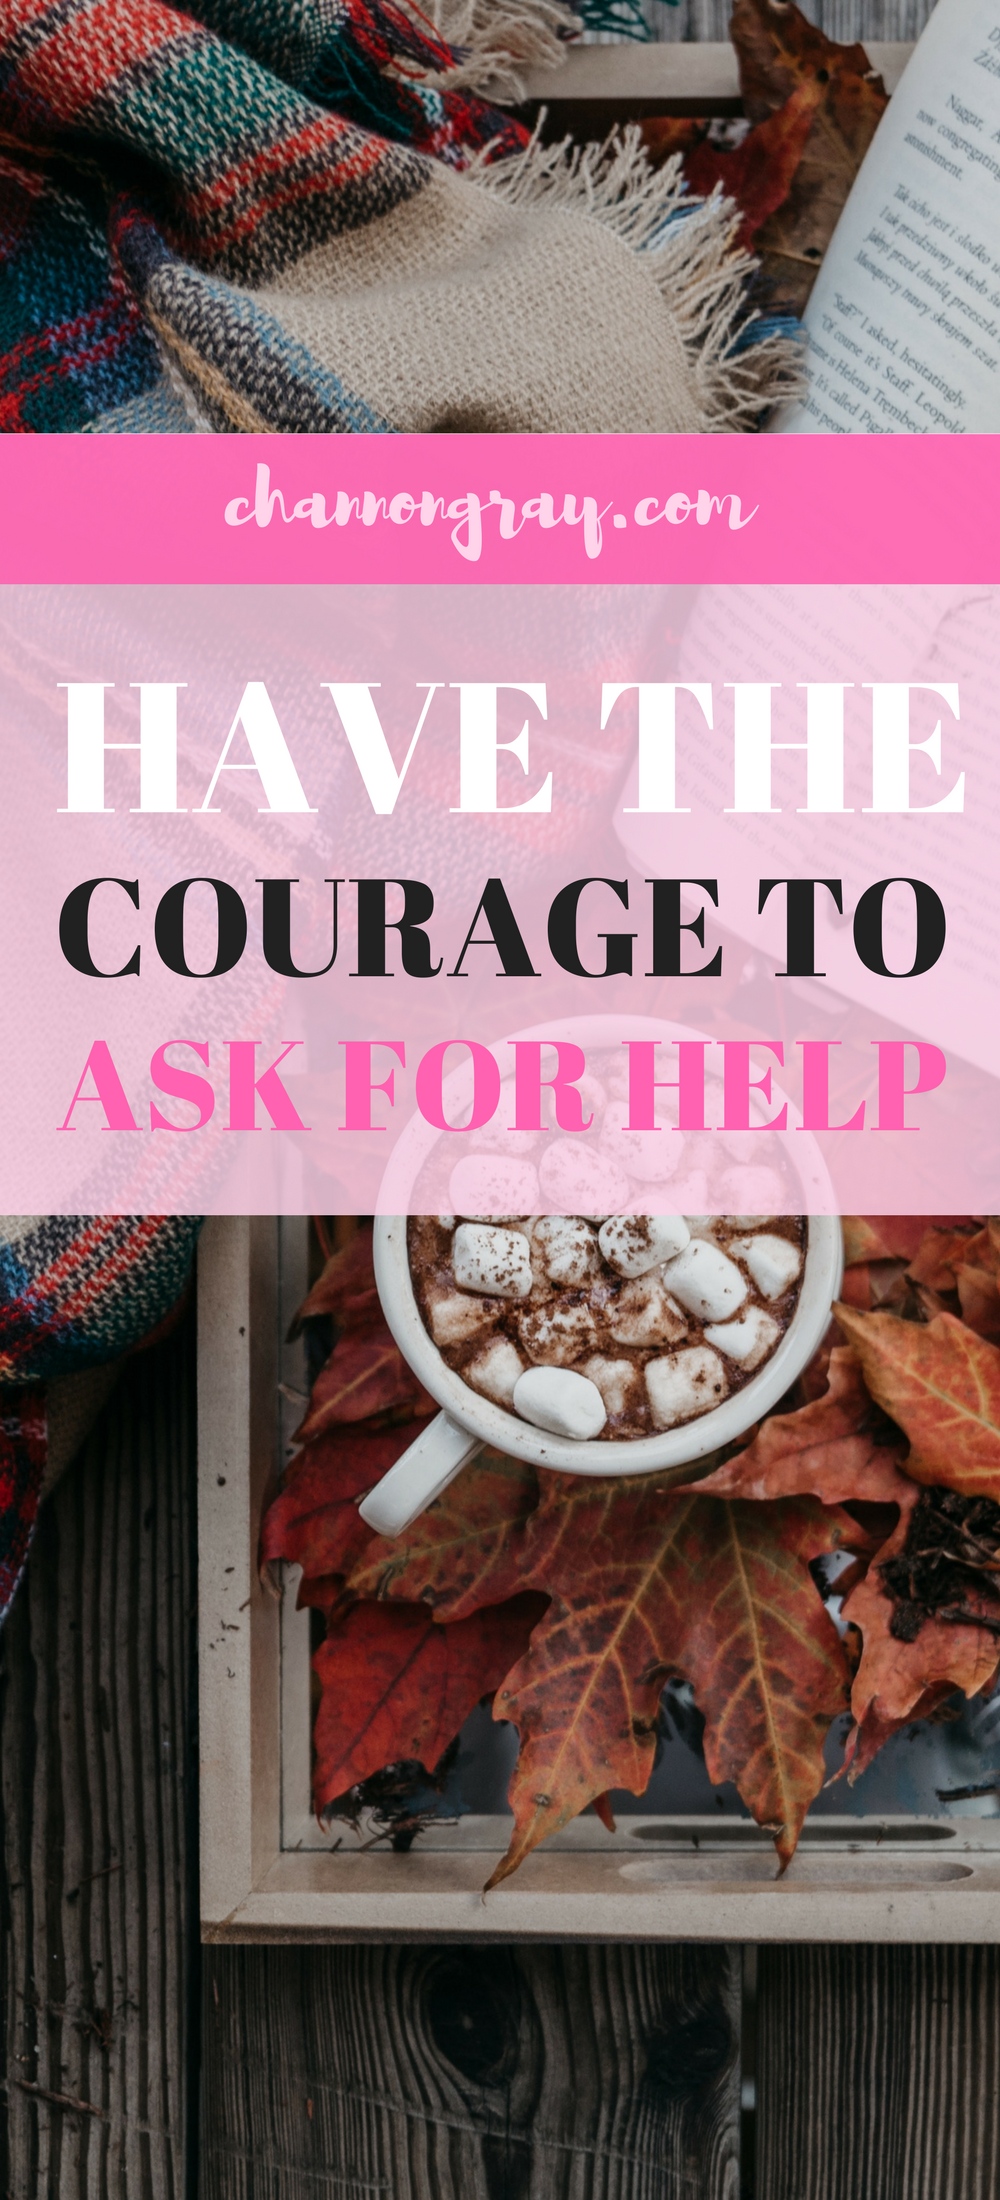 Having the courage to ask for help can be difficult at times. Being a student is not easy but asking for help can improve one's experiences. University can be a difficult time but through talking to others, reaching out and speaking up you'll find it does get better // heythereChannon